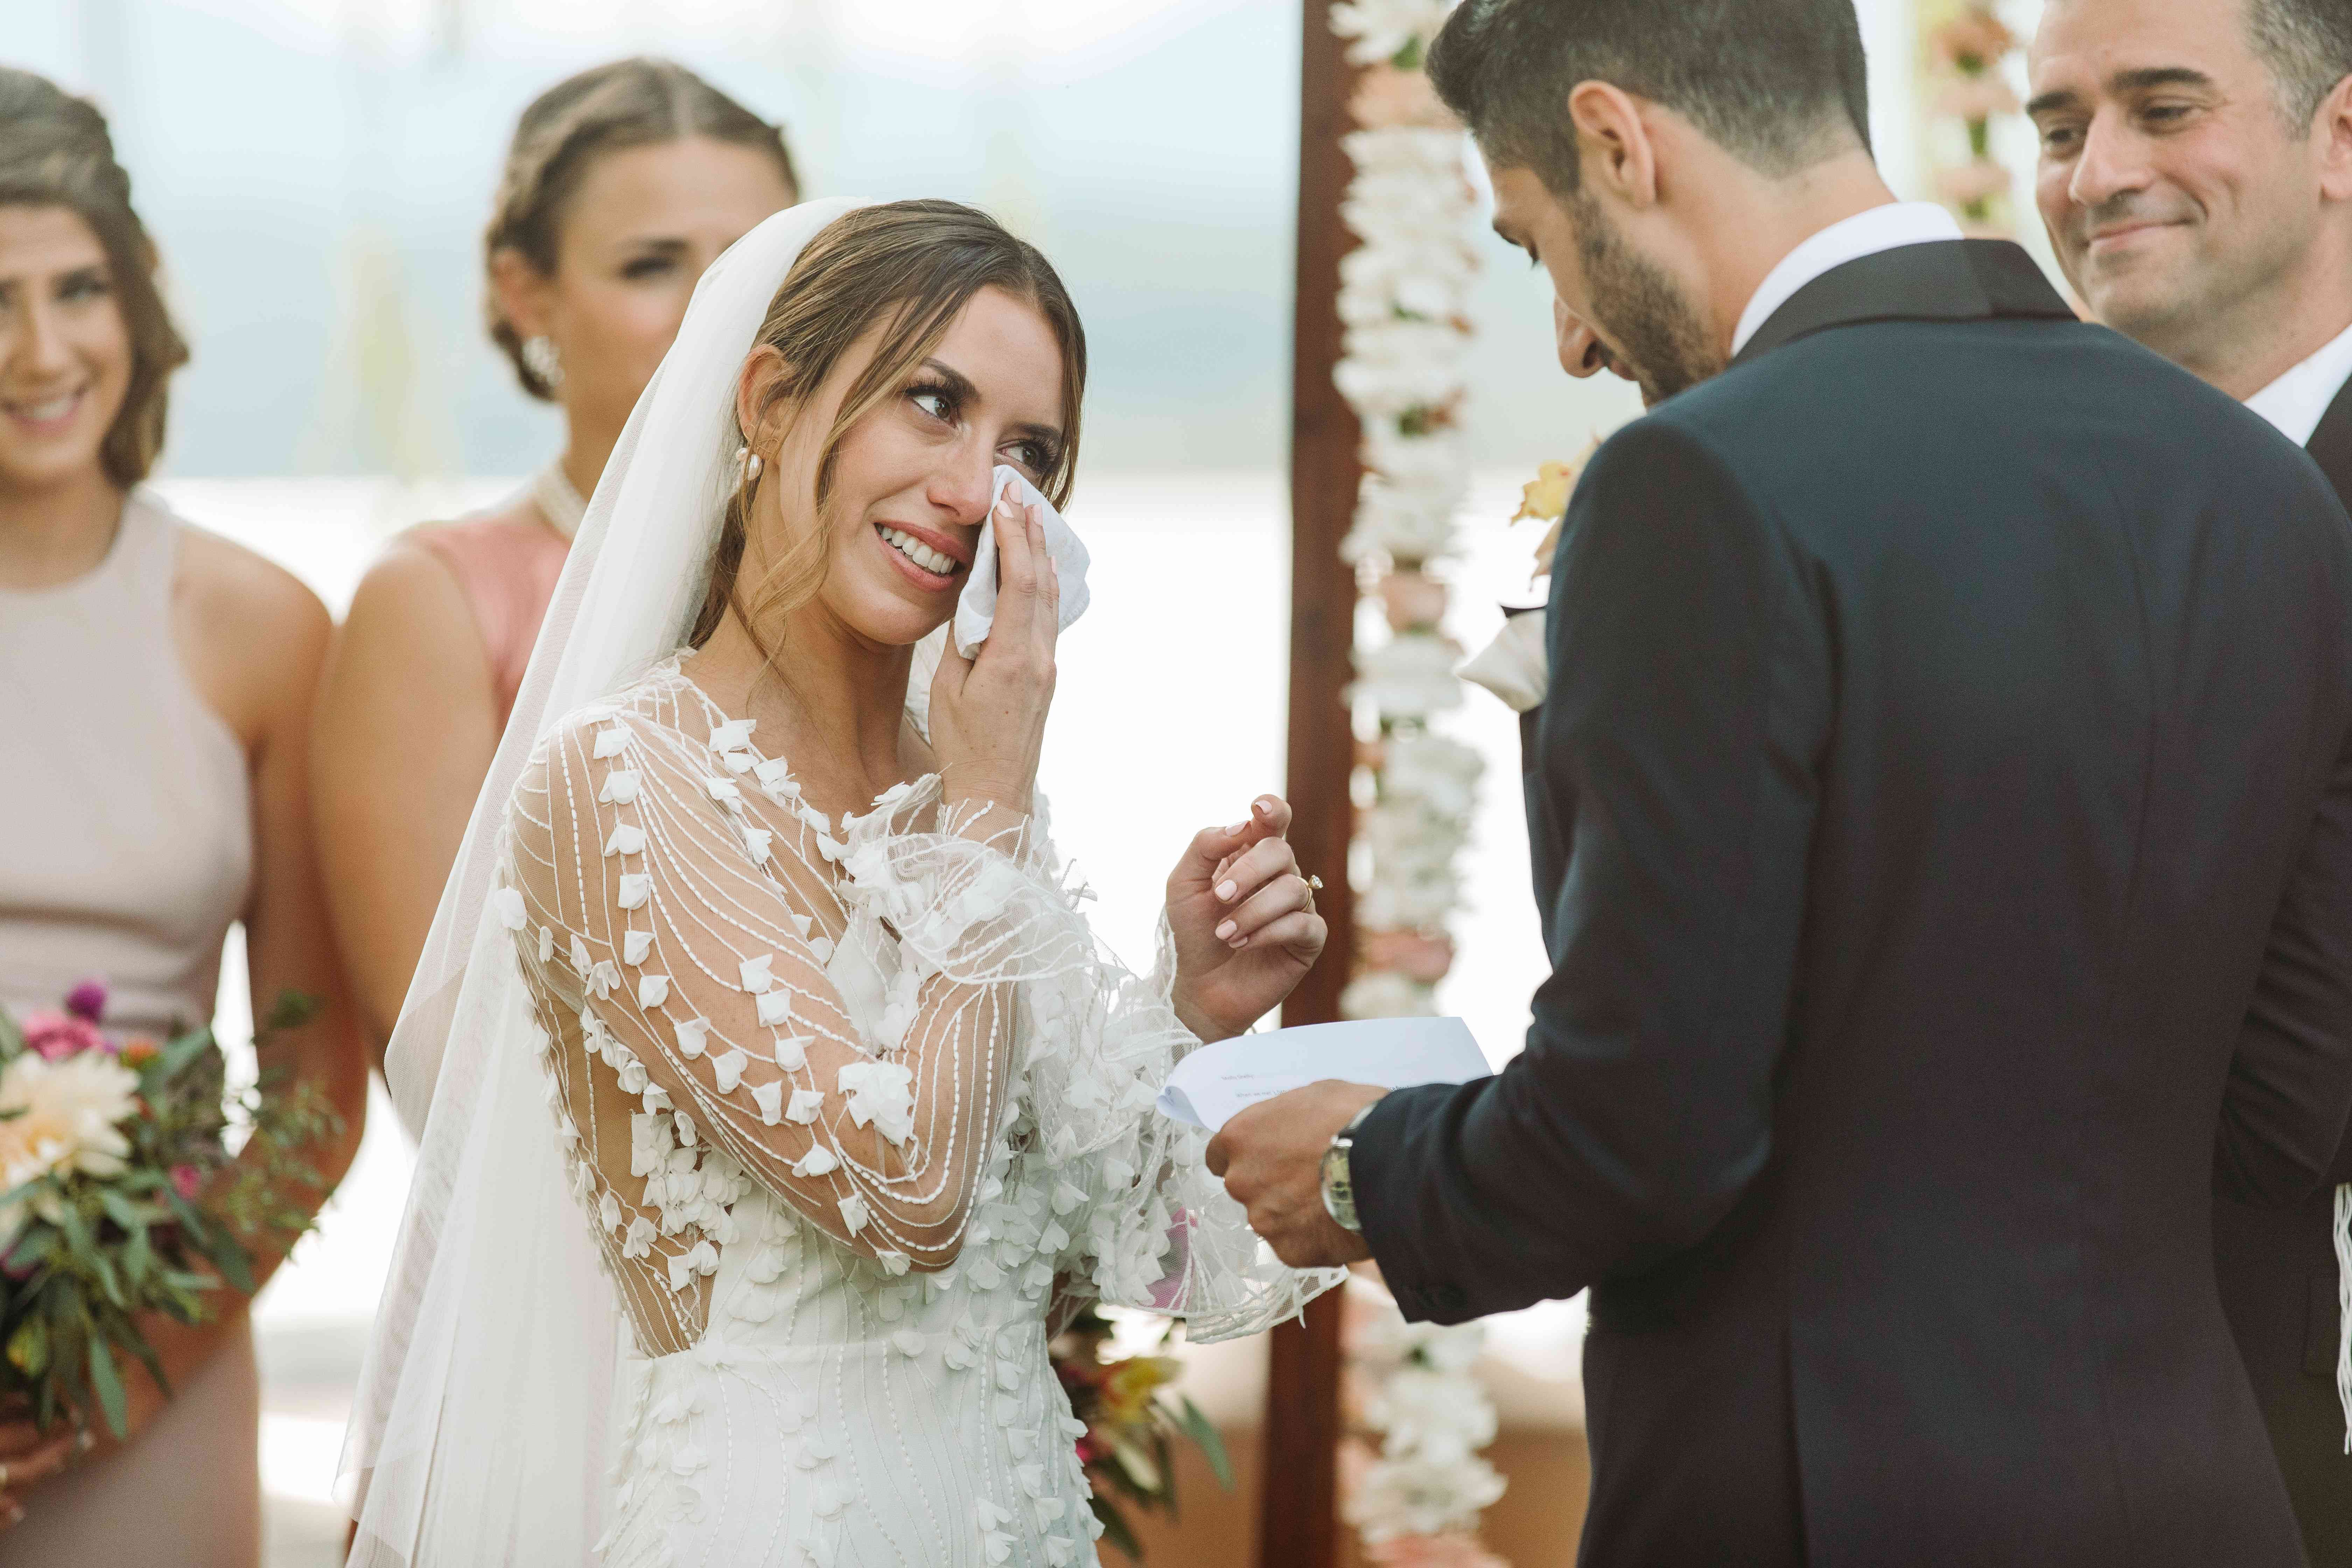 bride wiping tears during wedding ceremony